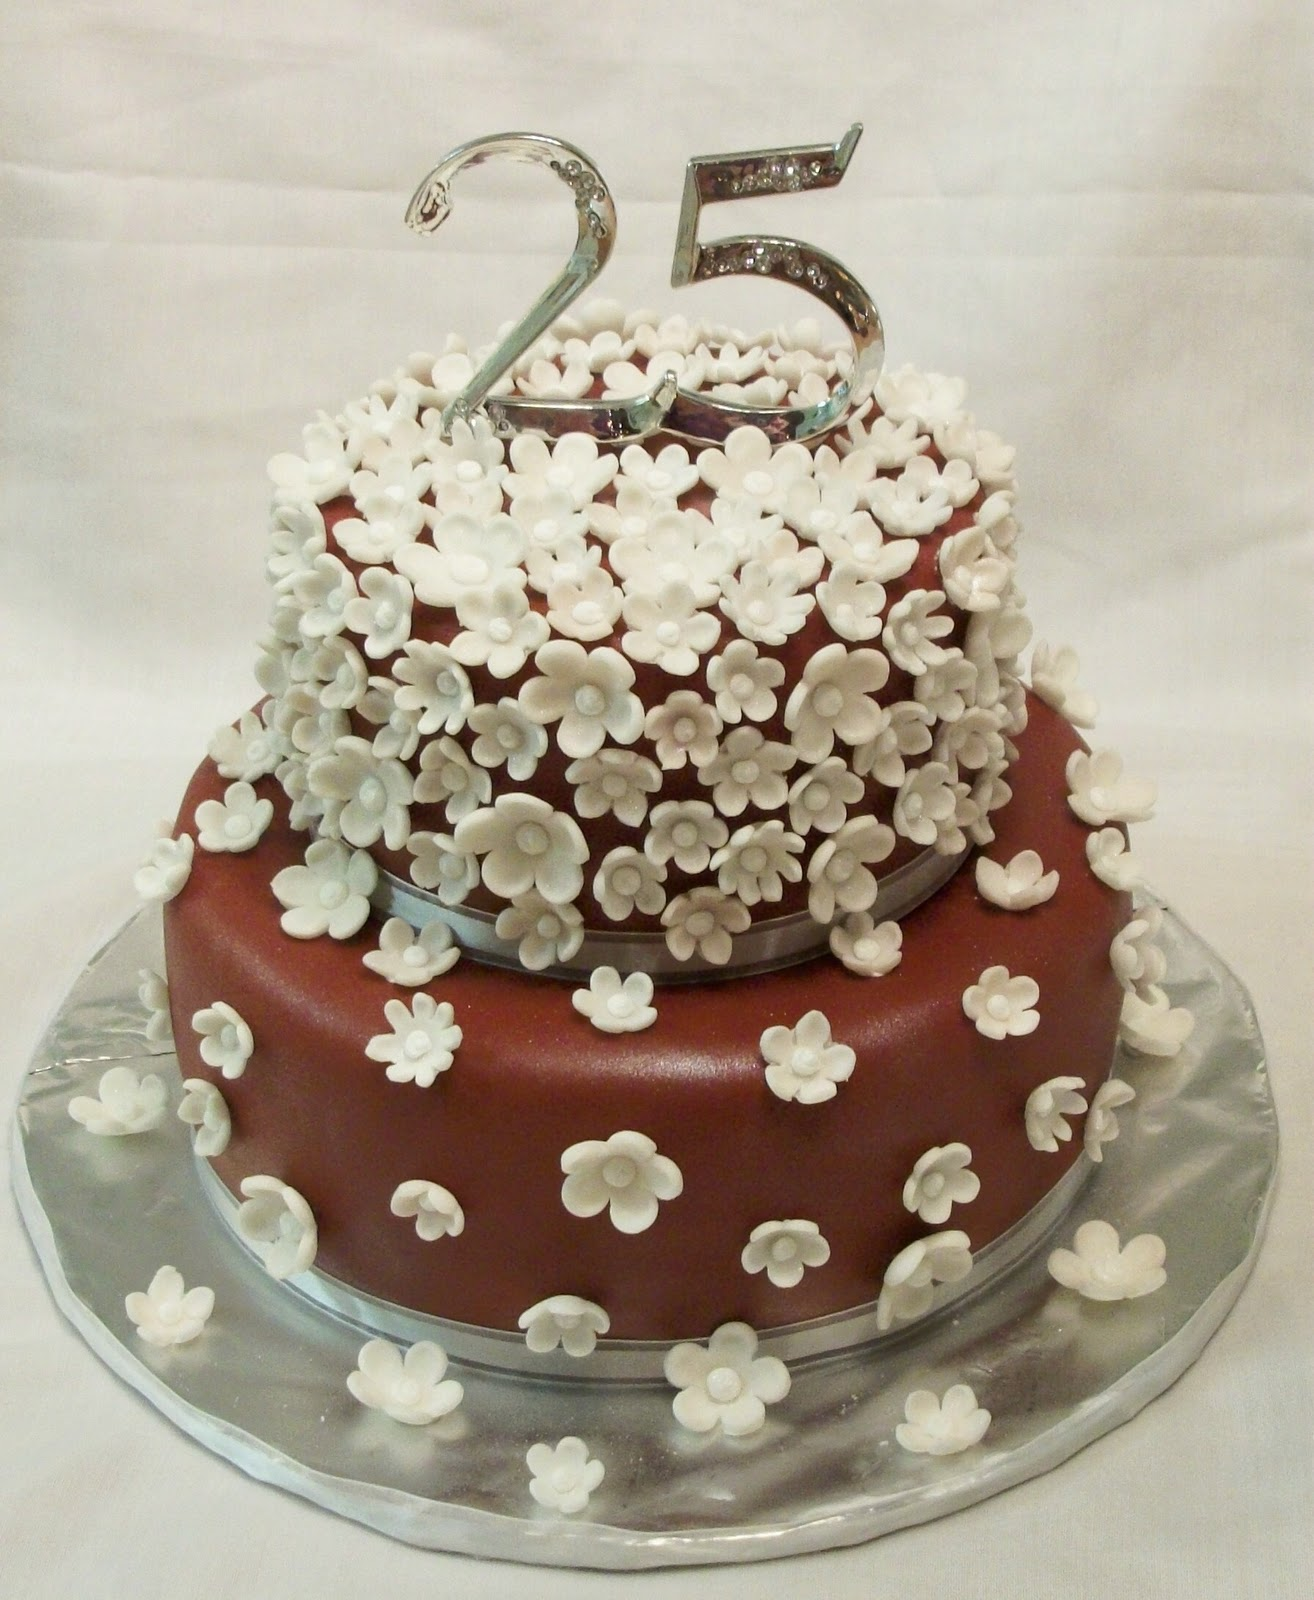 Pictures of 25Th Anniversary Cakes http://bellissimocakes.blogspot.com/2010/11/25th-anniversary-cake.html